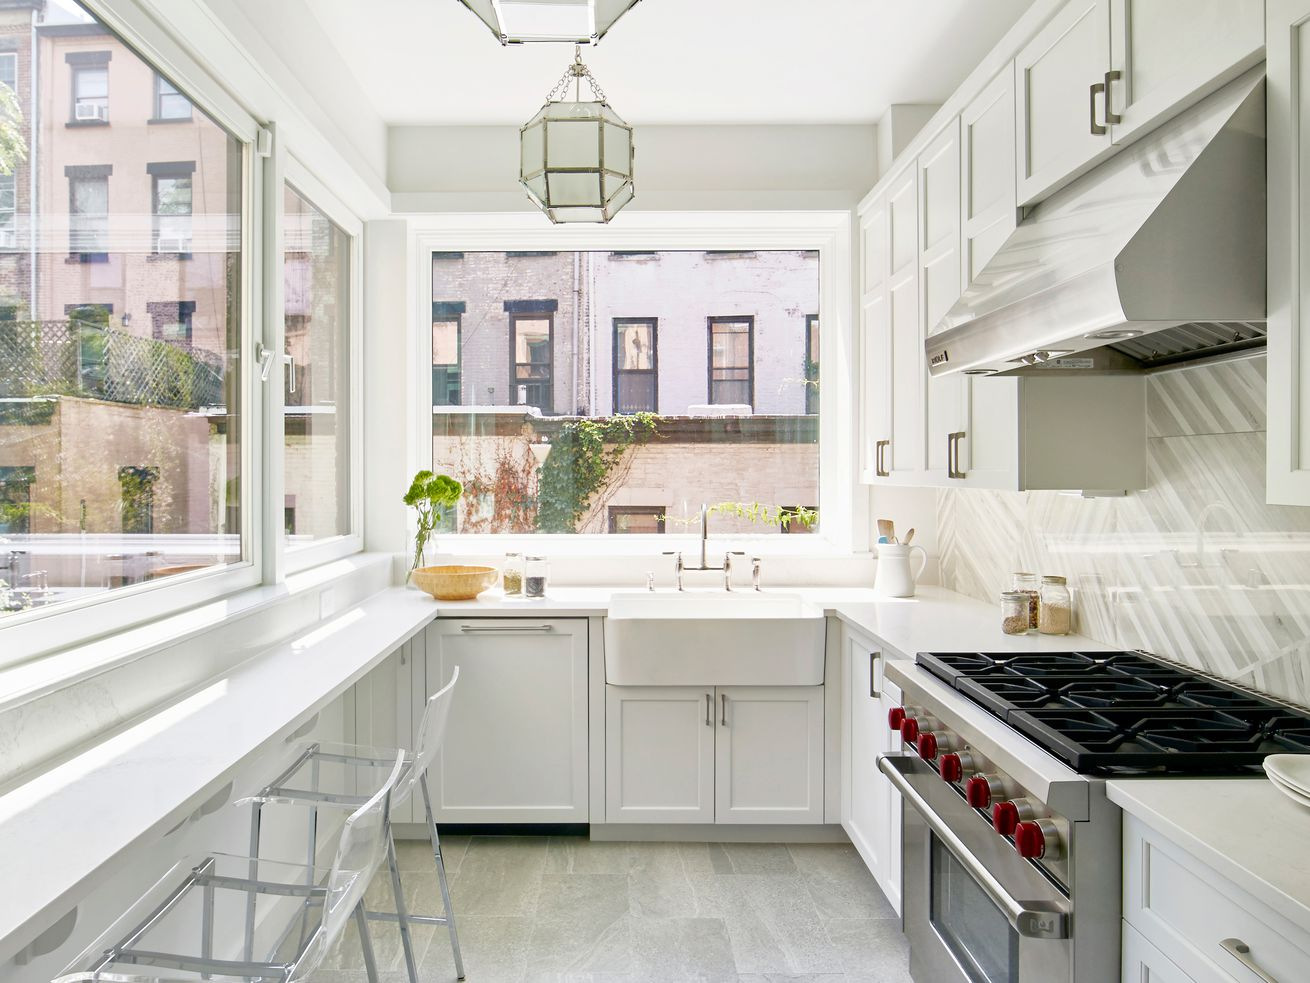 A white galley kitchen with large windows on two sides, as well as pendant lights down the length of the room.